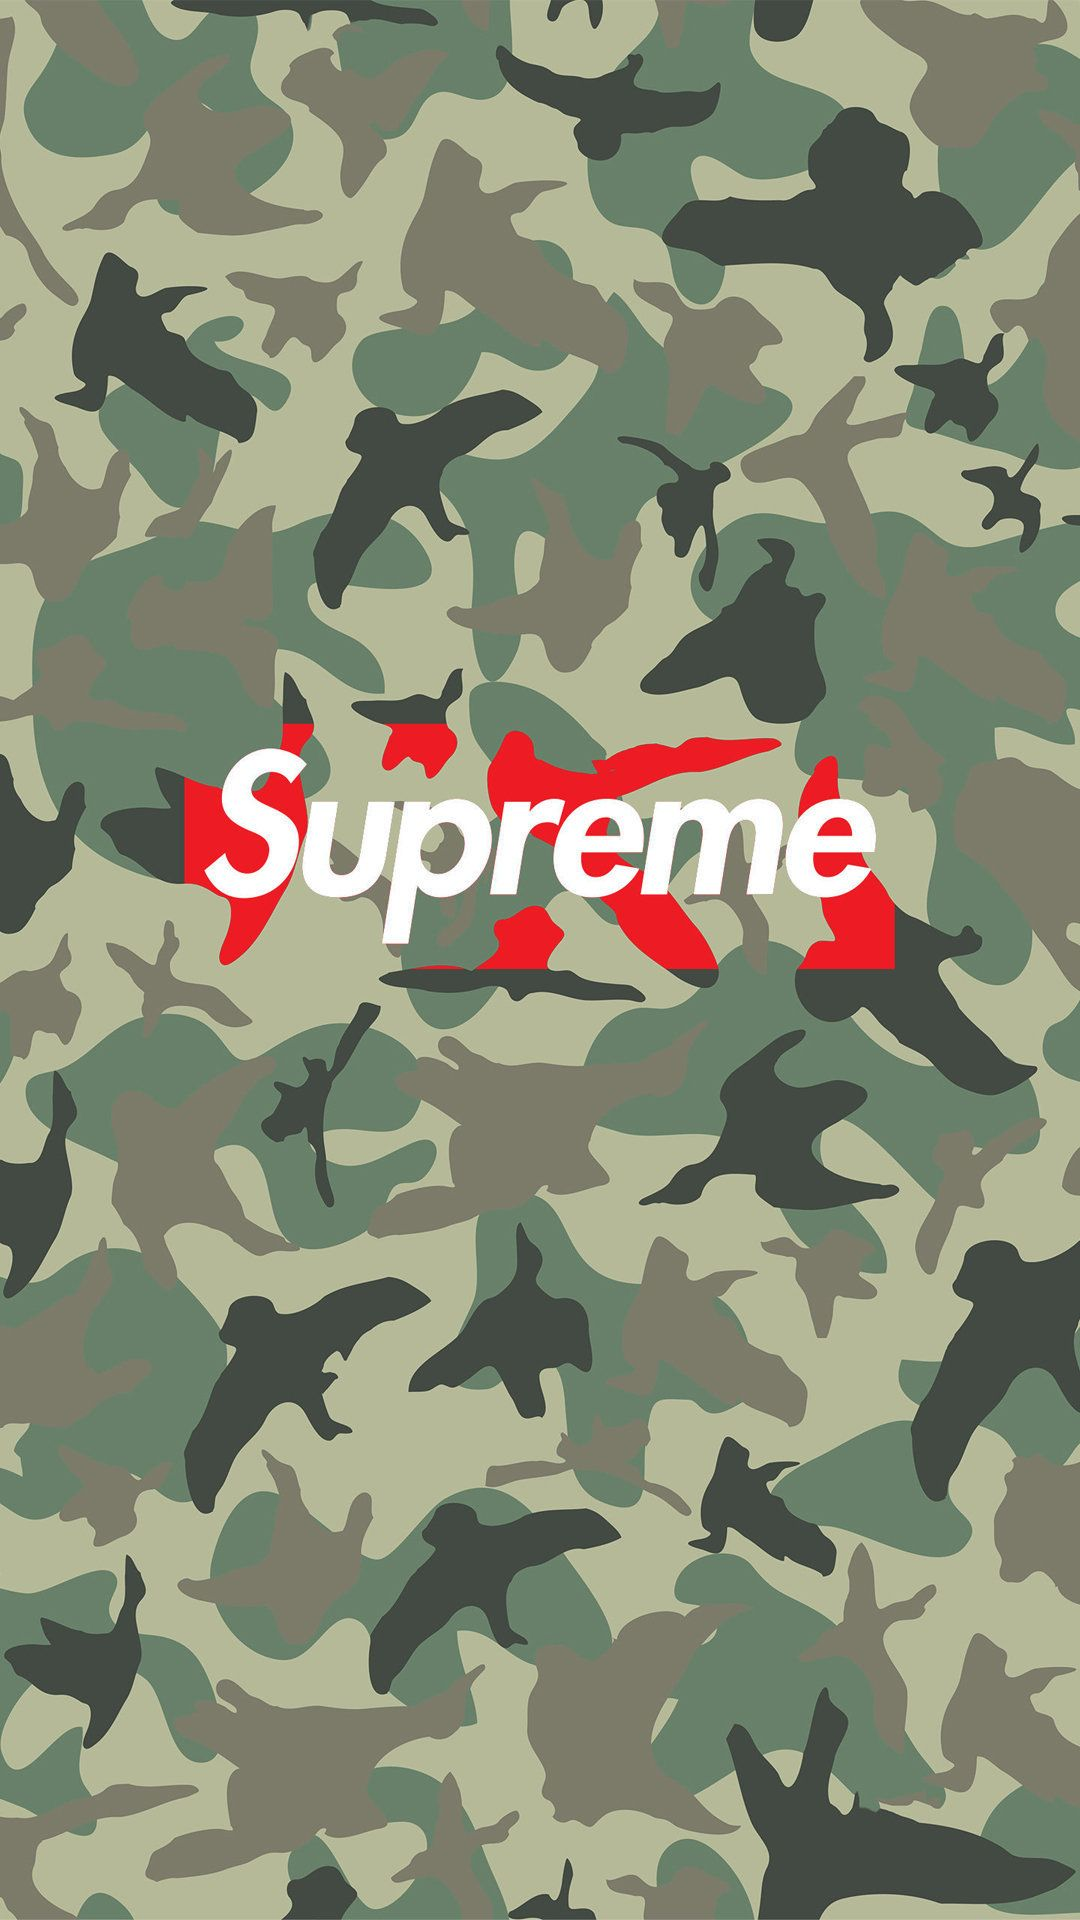 Supreme Camo Tap To See More Of The Supreme Wallpapers